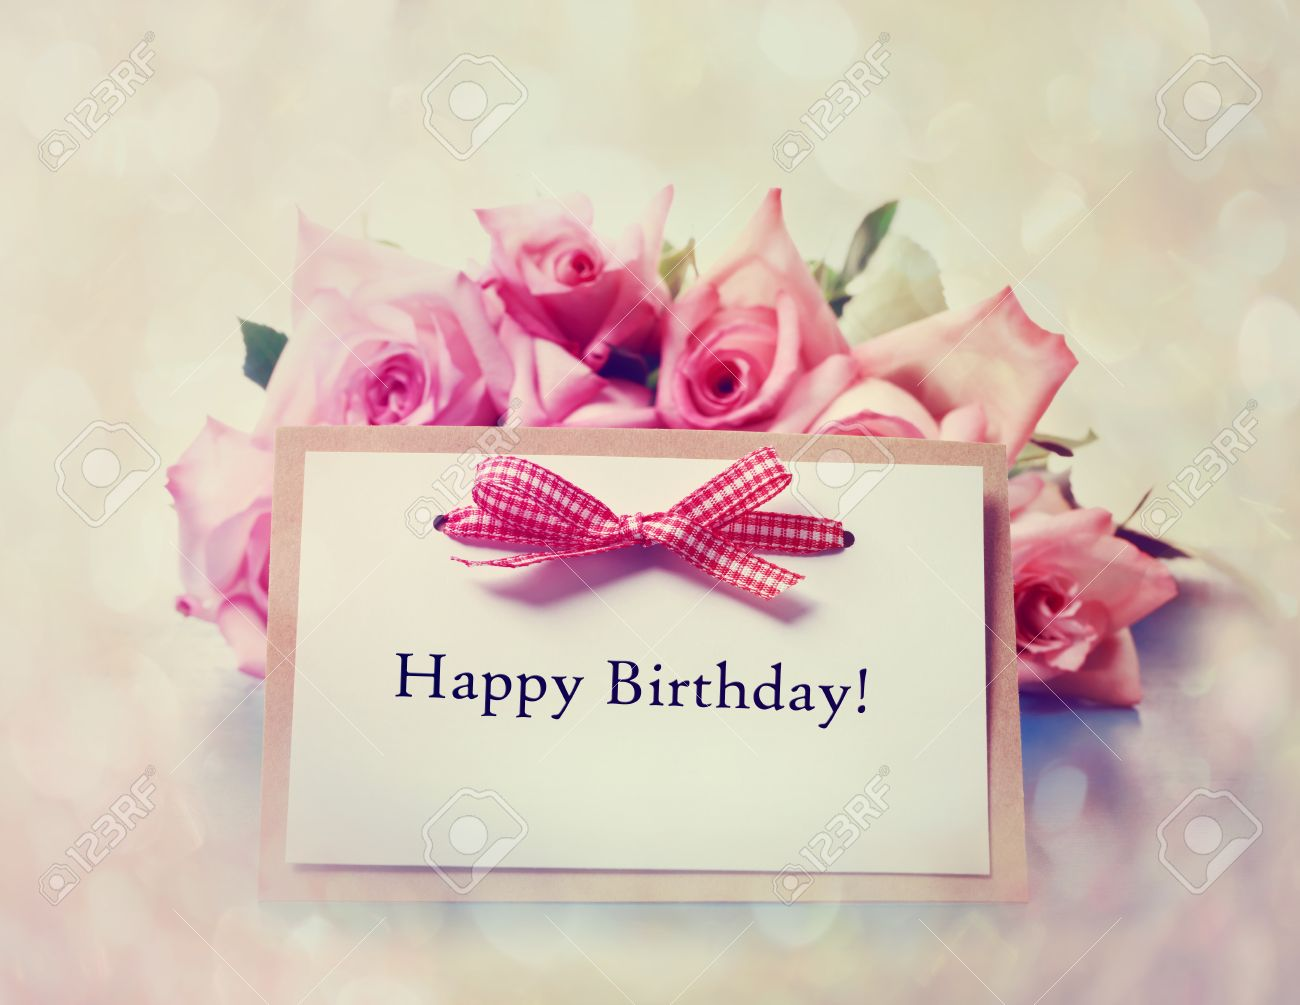 Happy Birthday Message Card With Retro Pink Roses Photo – Happy Birthday Card Message